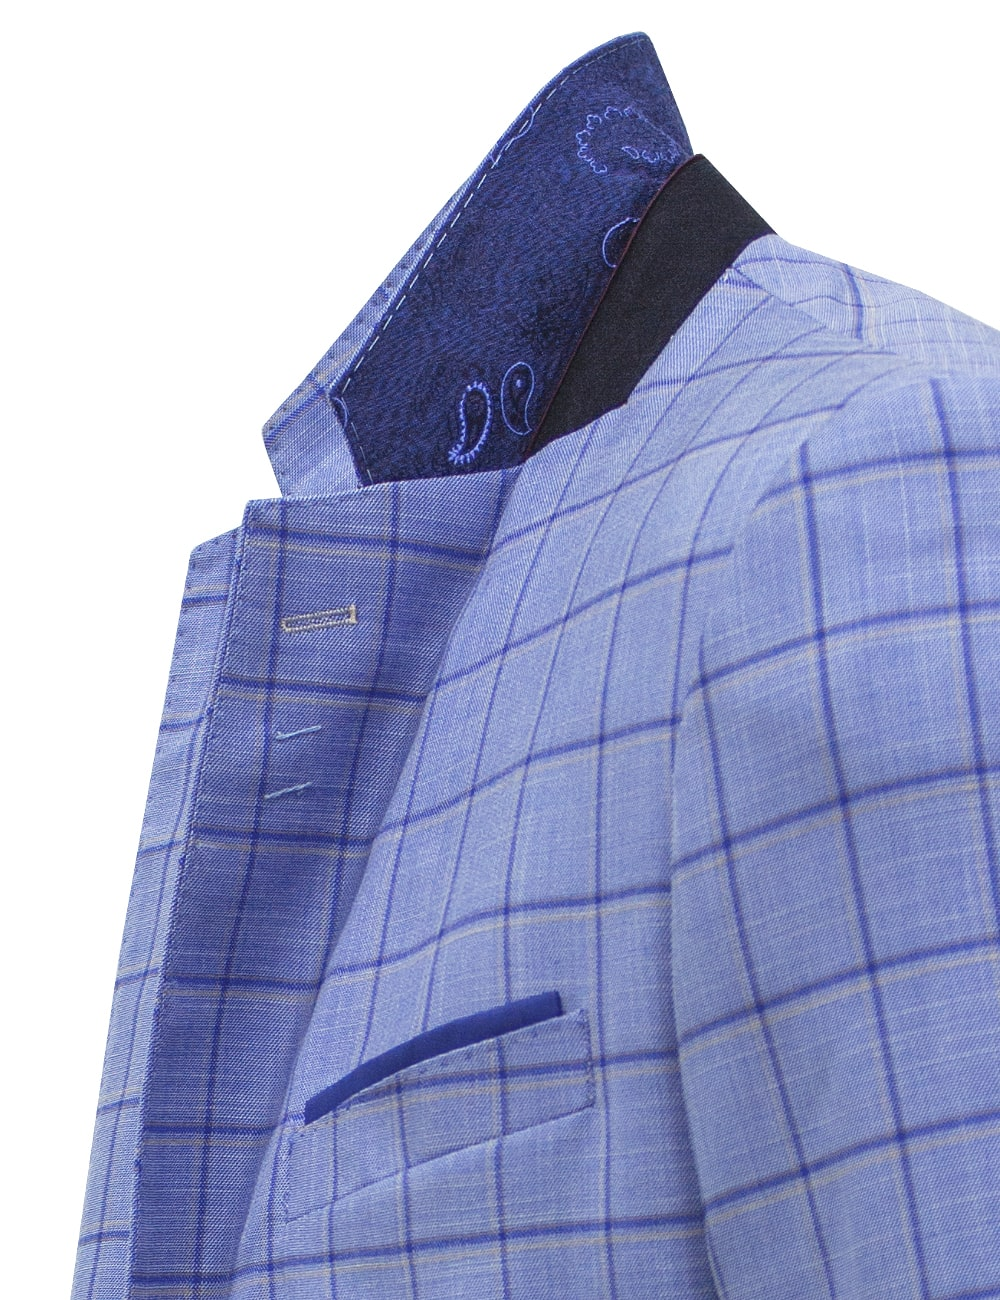 Slim / Tailored Fit Light Blue Checks Single Breasted Suit Set - SS9.4